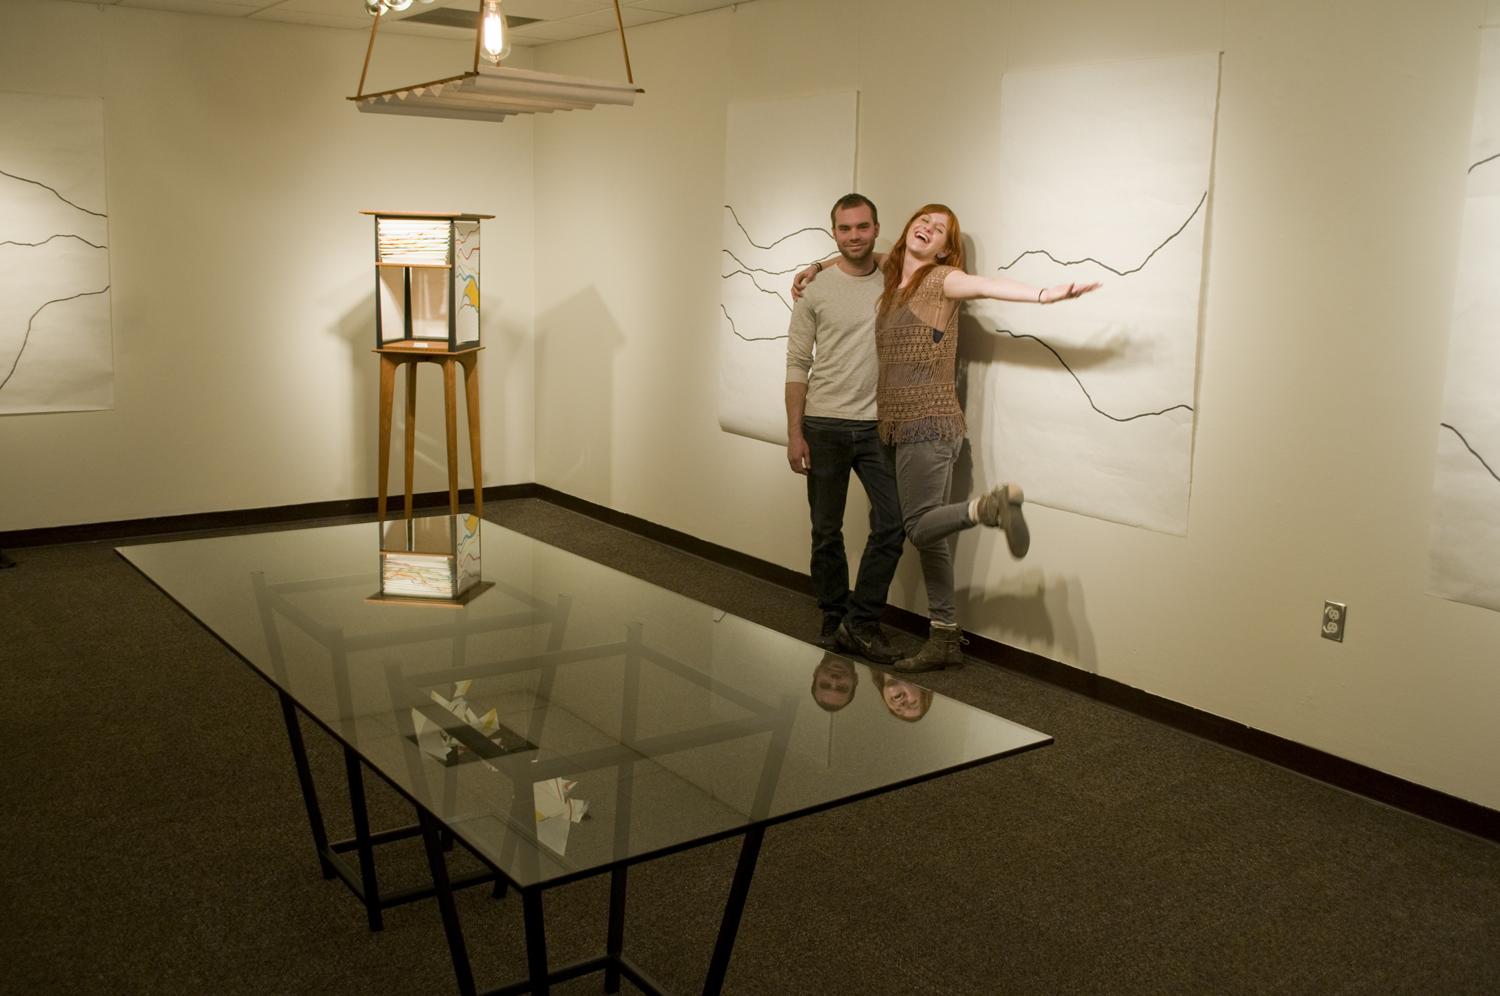 Evan Fay and Megan Armstrong pose next to their exhibition